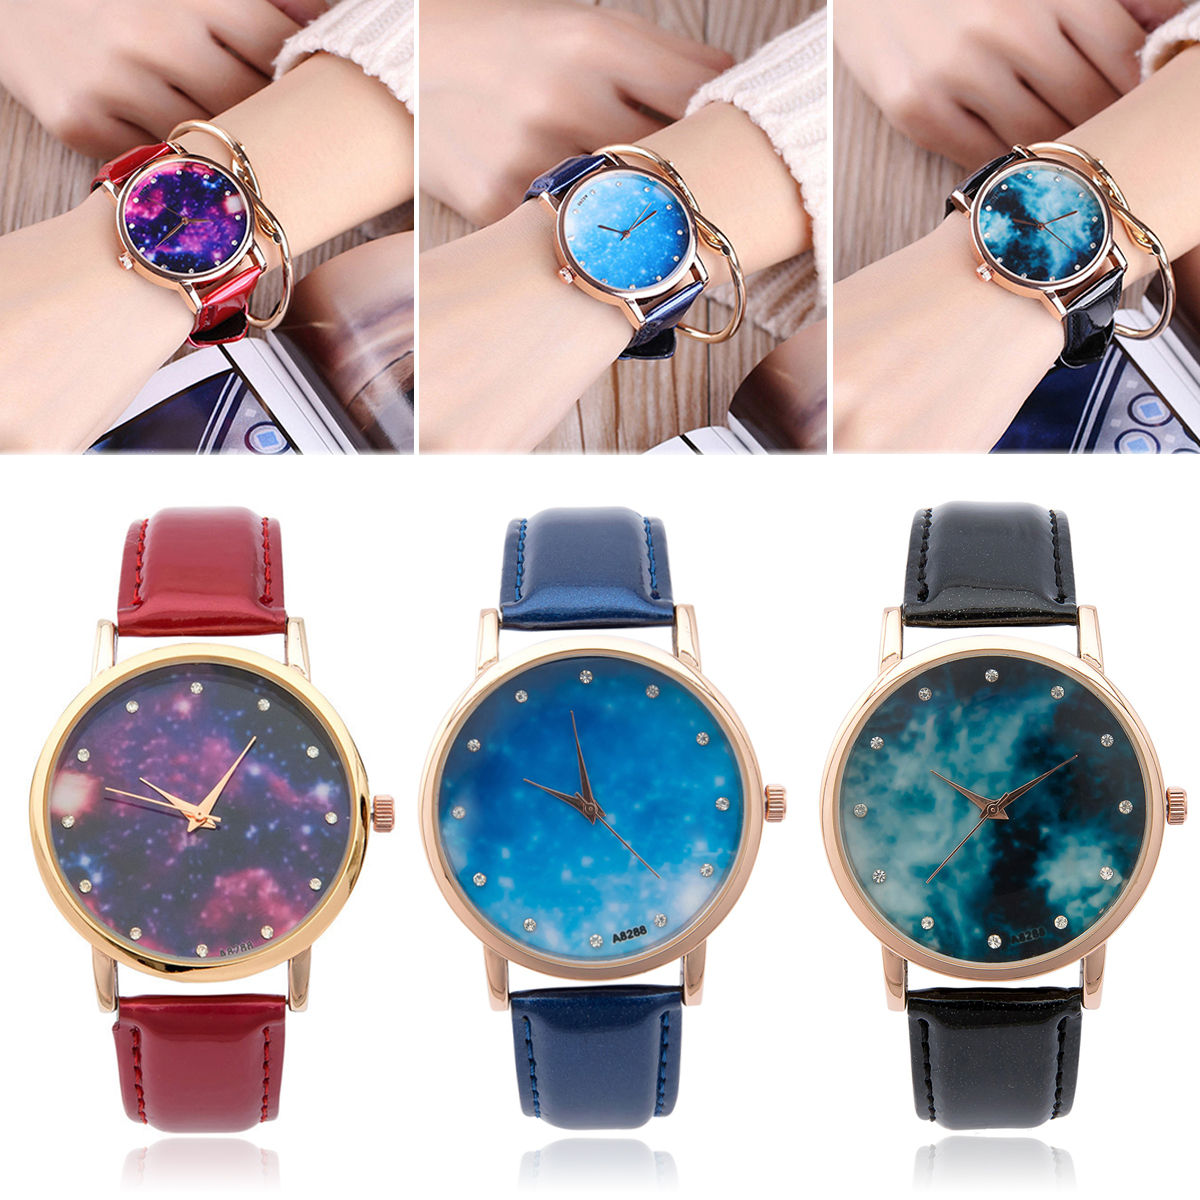 Women's Casual Star Sky Space Pattern Leather Watch Fashion Elegant Rhinestone Quartz Wrist Watch Ladies Gift Relogio Feminino rigardu fashion female wrist watch lovers gift leather band alloy case wristwatch women lady quartz watch relogio feminino 25